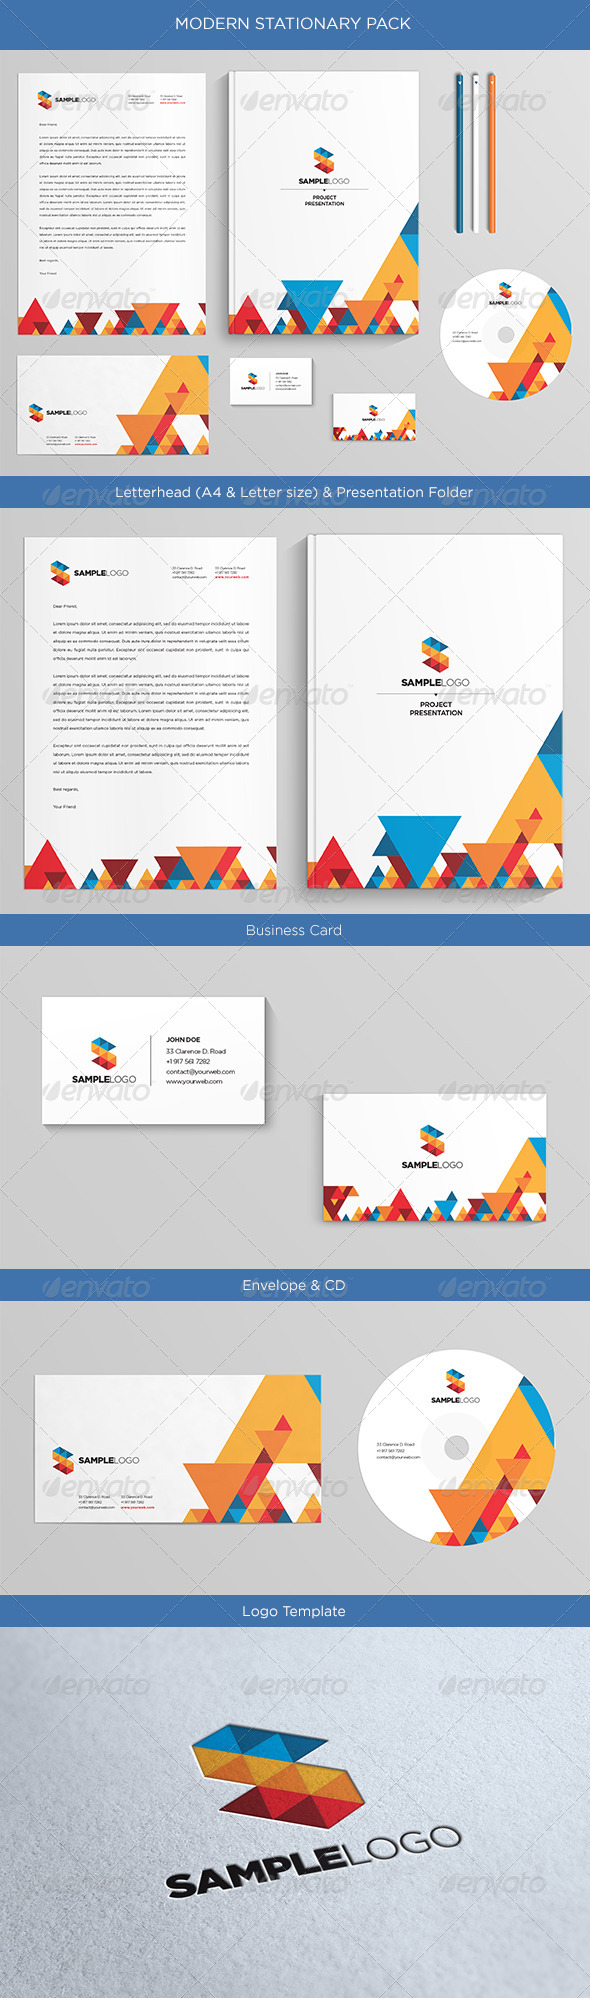 GraphicRiver Modern Stationary Pack 4852152